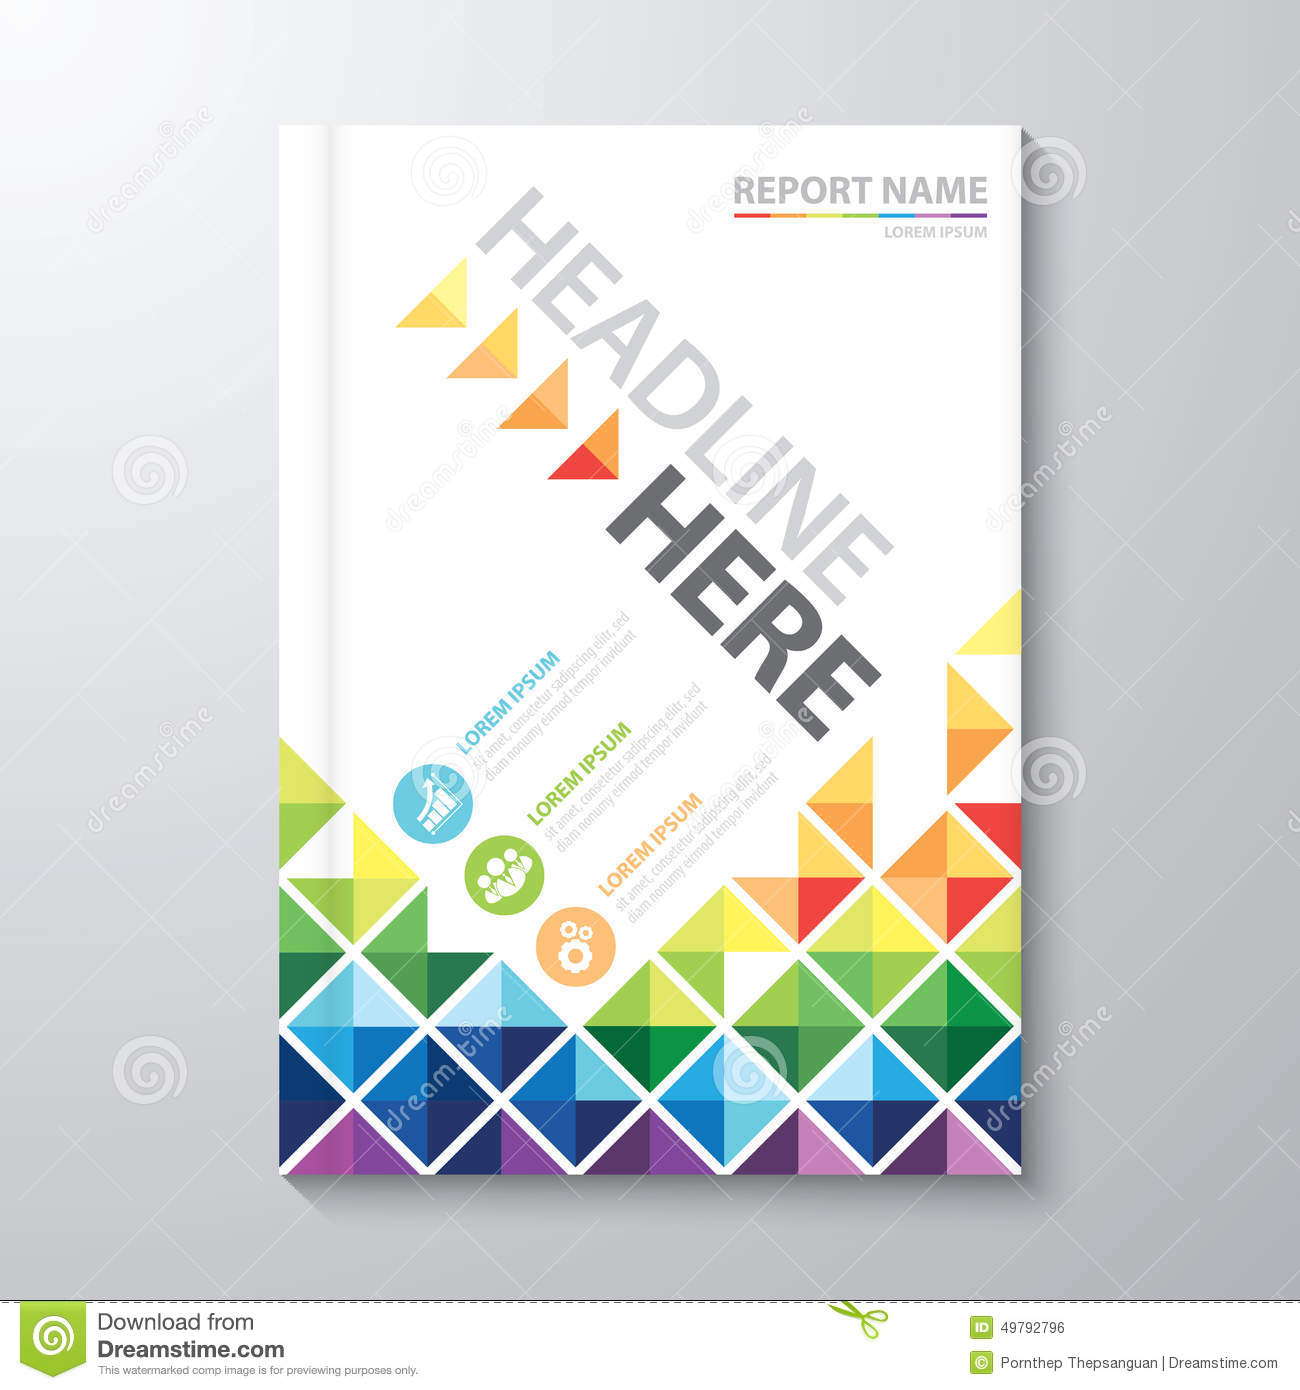 Report Cover Page Templates Free Download company profile template – Free Report Cover Templates